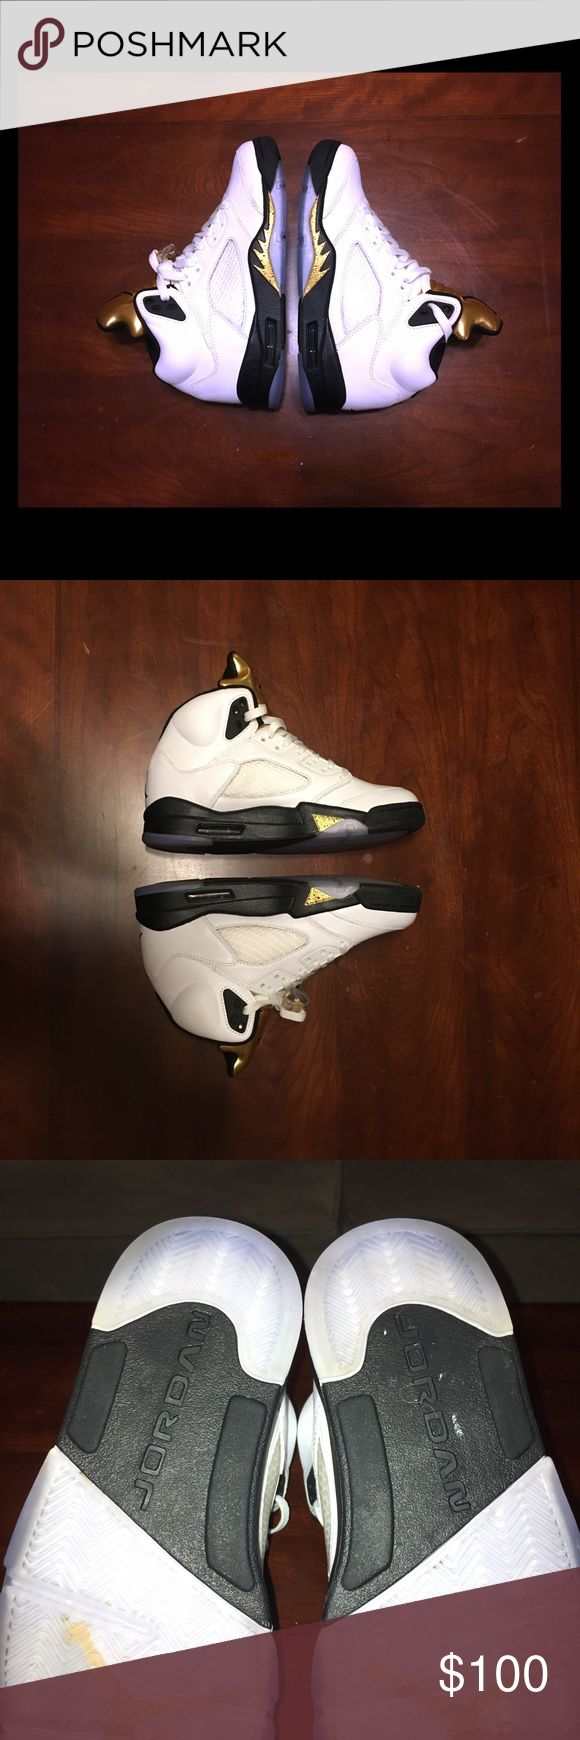 NIKE Air Jordan Olympic Gold 5's Size 7.5 Y EUC shoes with no OG box. Comes with the shoes, original insoles, laces & lace locks. Worn 2-3x, super clean! With little to no creasing. (See pics)  ⭐️ SIZE ⭐️ 7.5 Youth = 7.5 Men = 9 Women Nike Shoes Sneakers